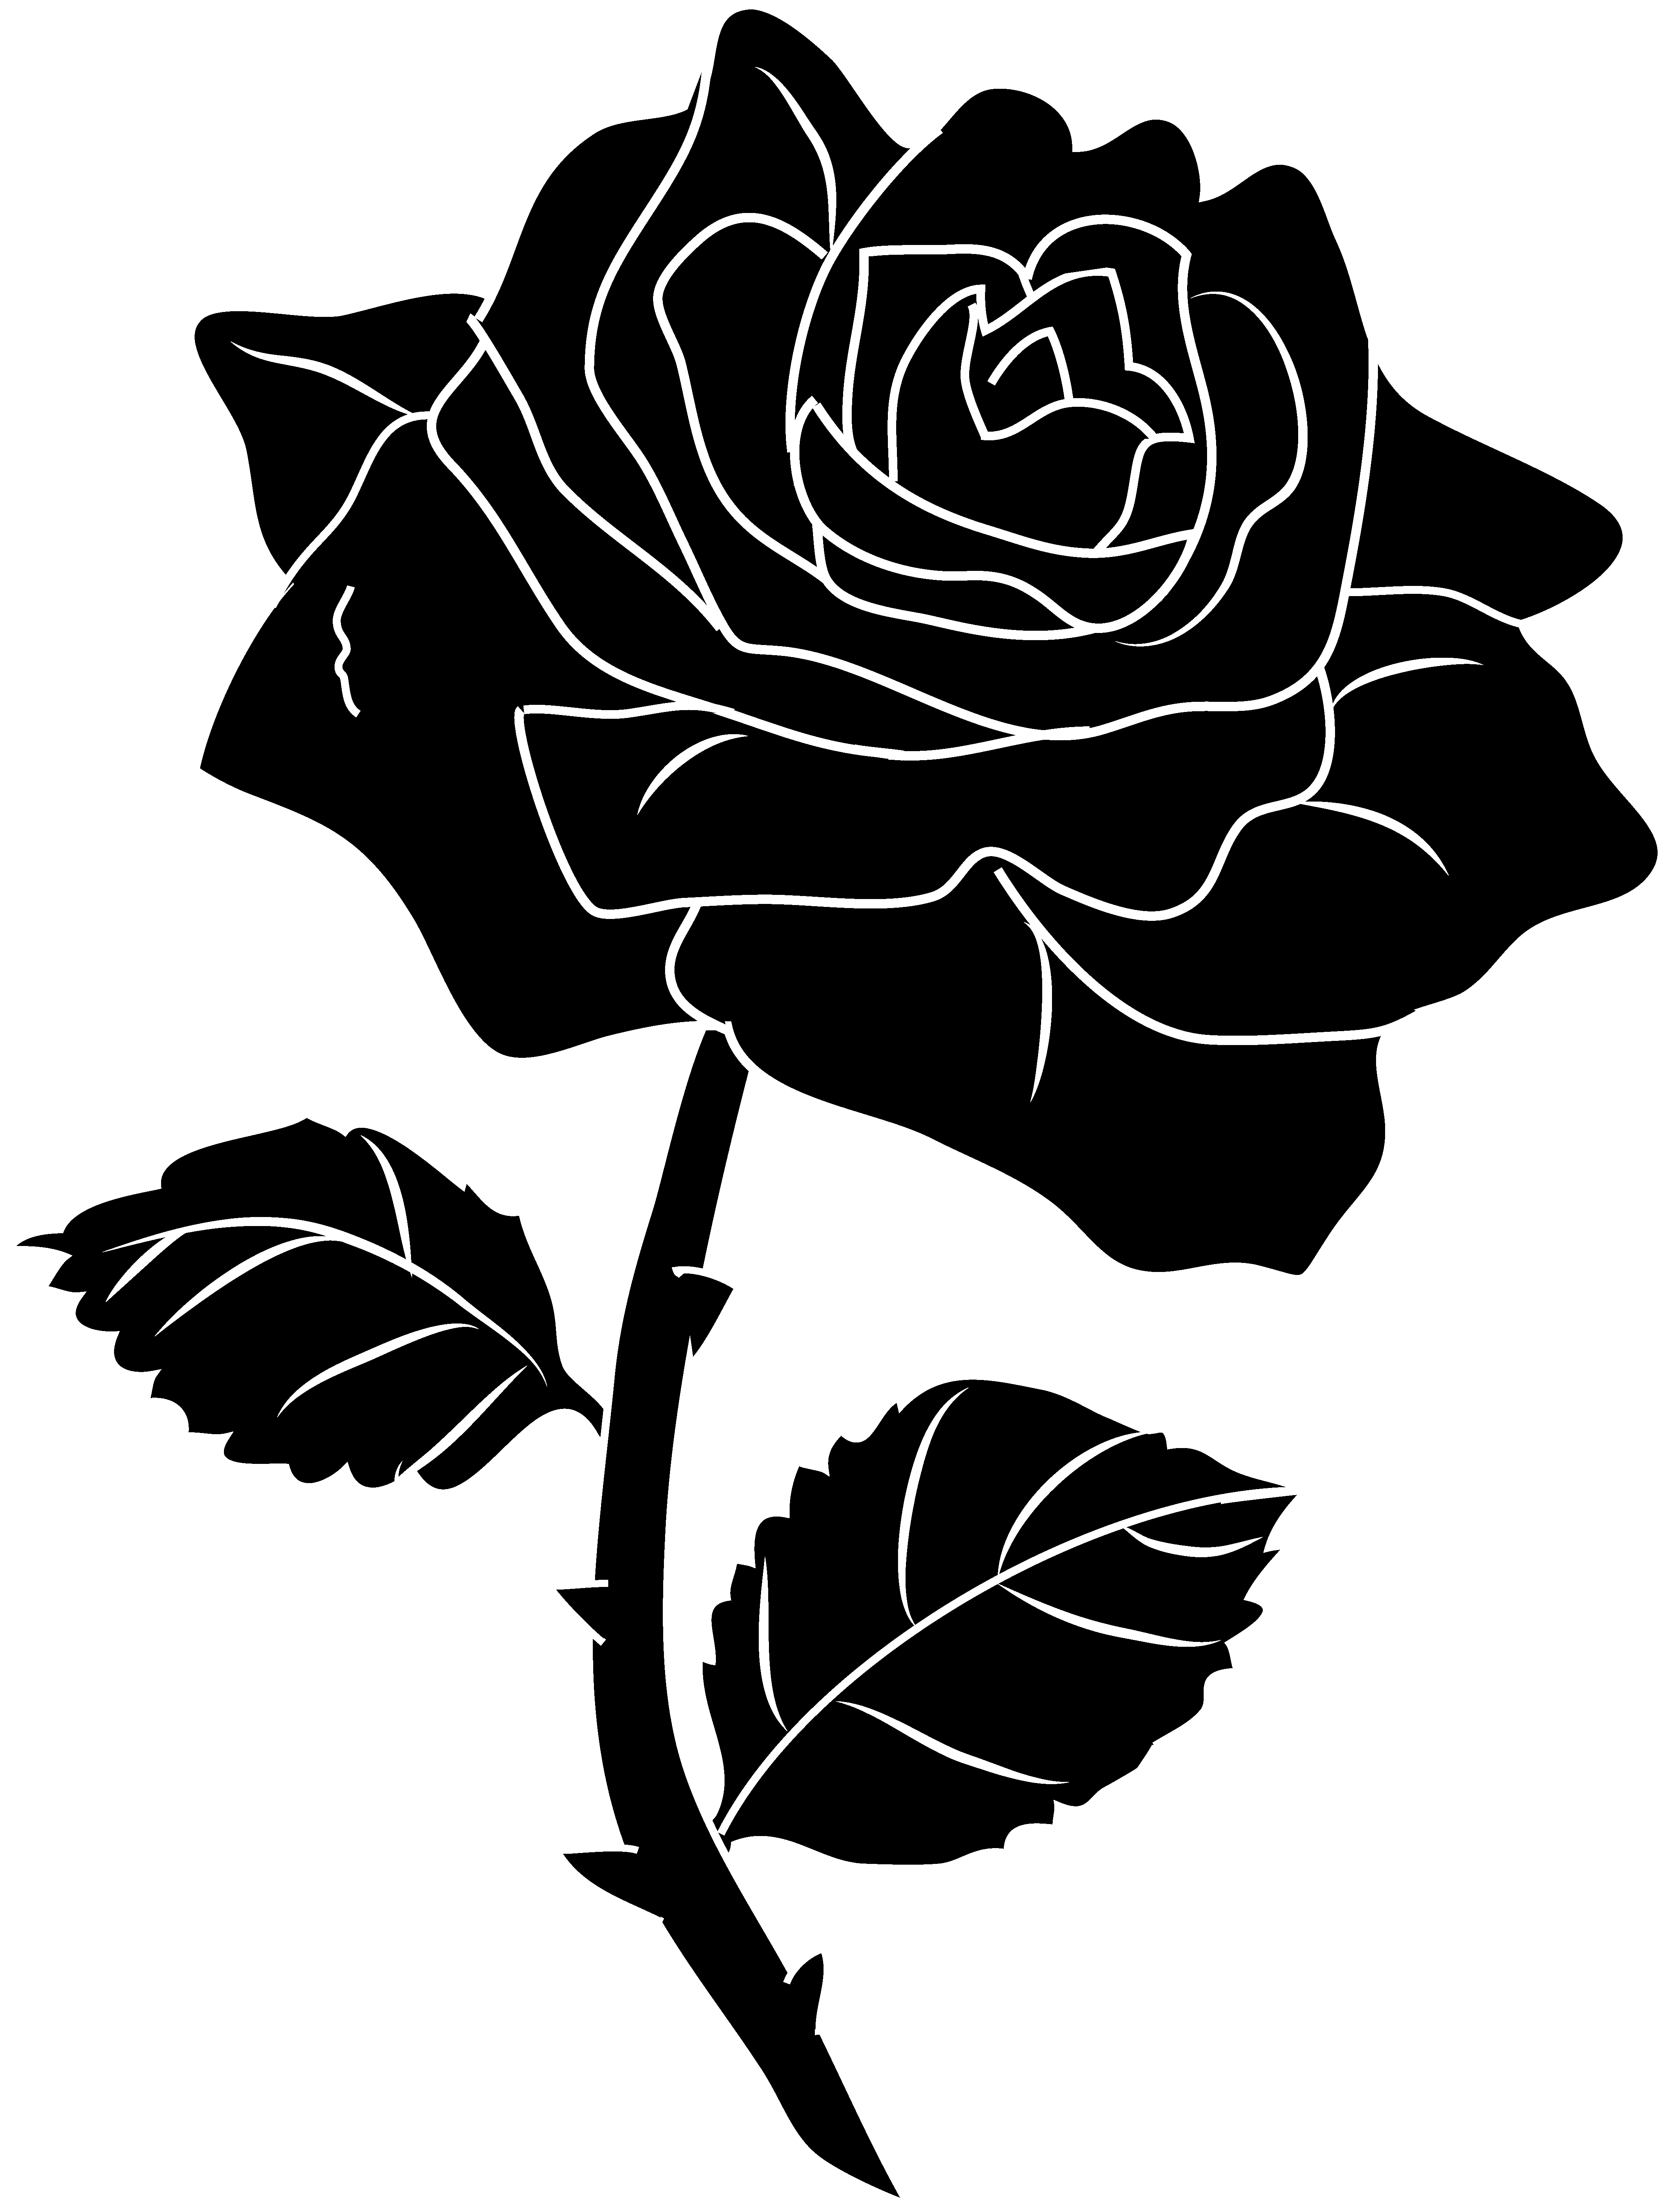 graphic transparent Rose Flowers Clip Art Black And White